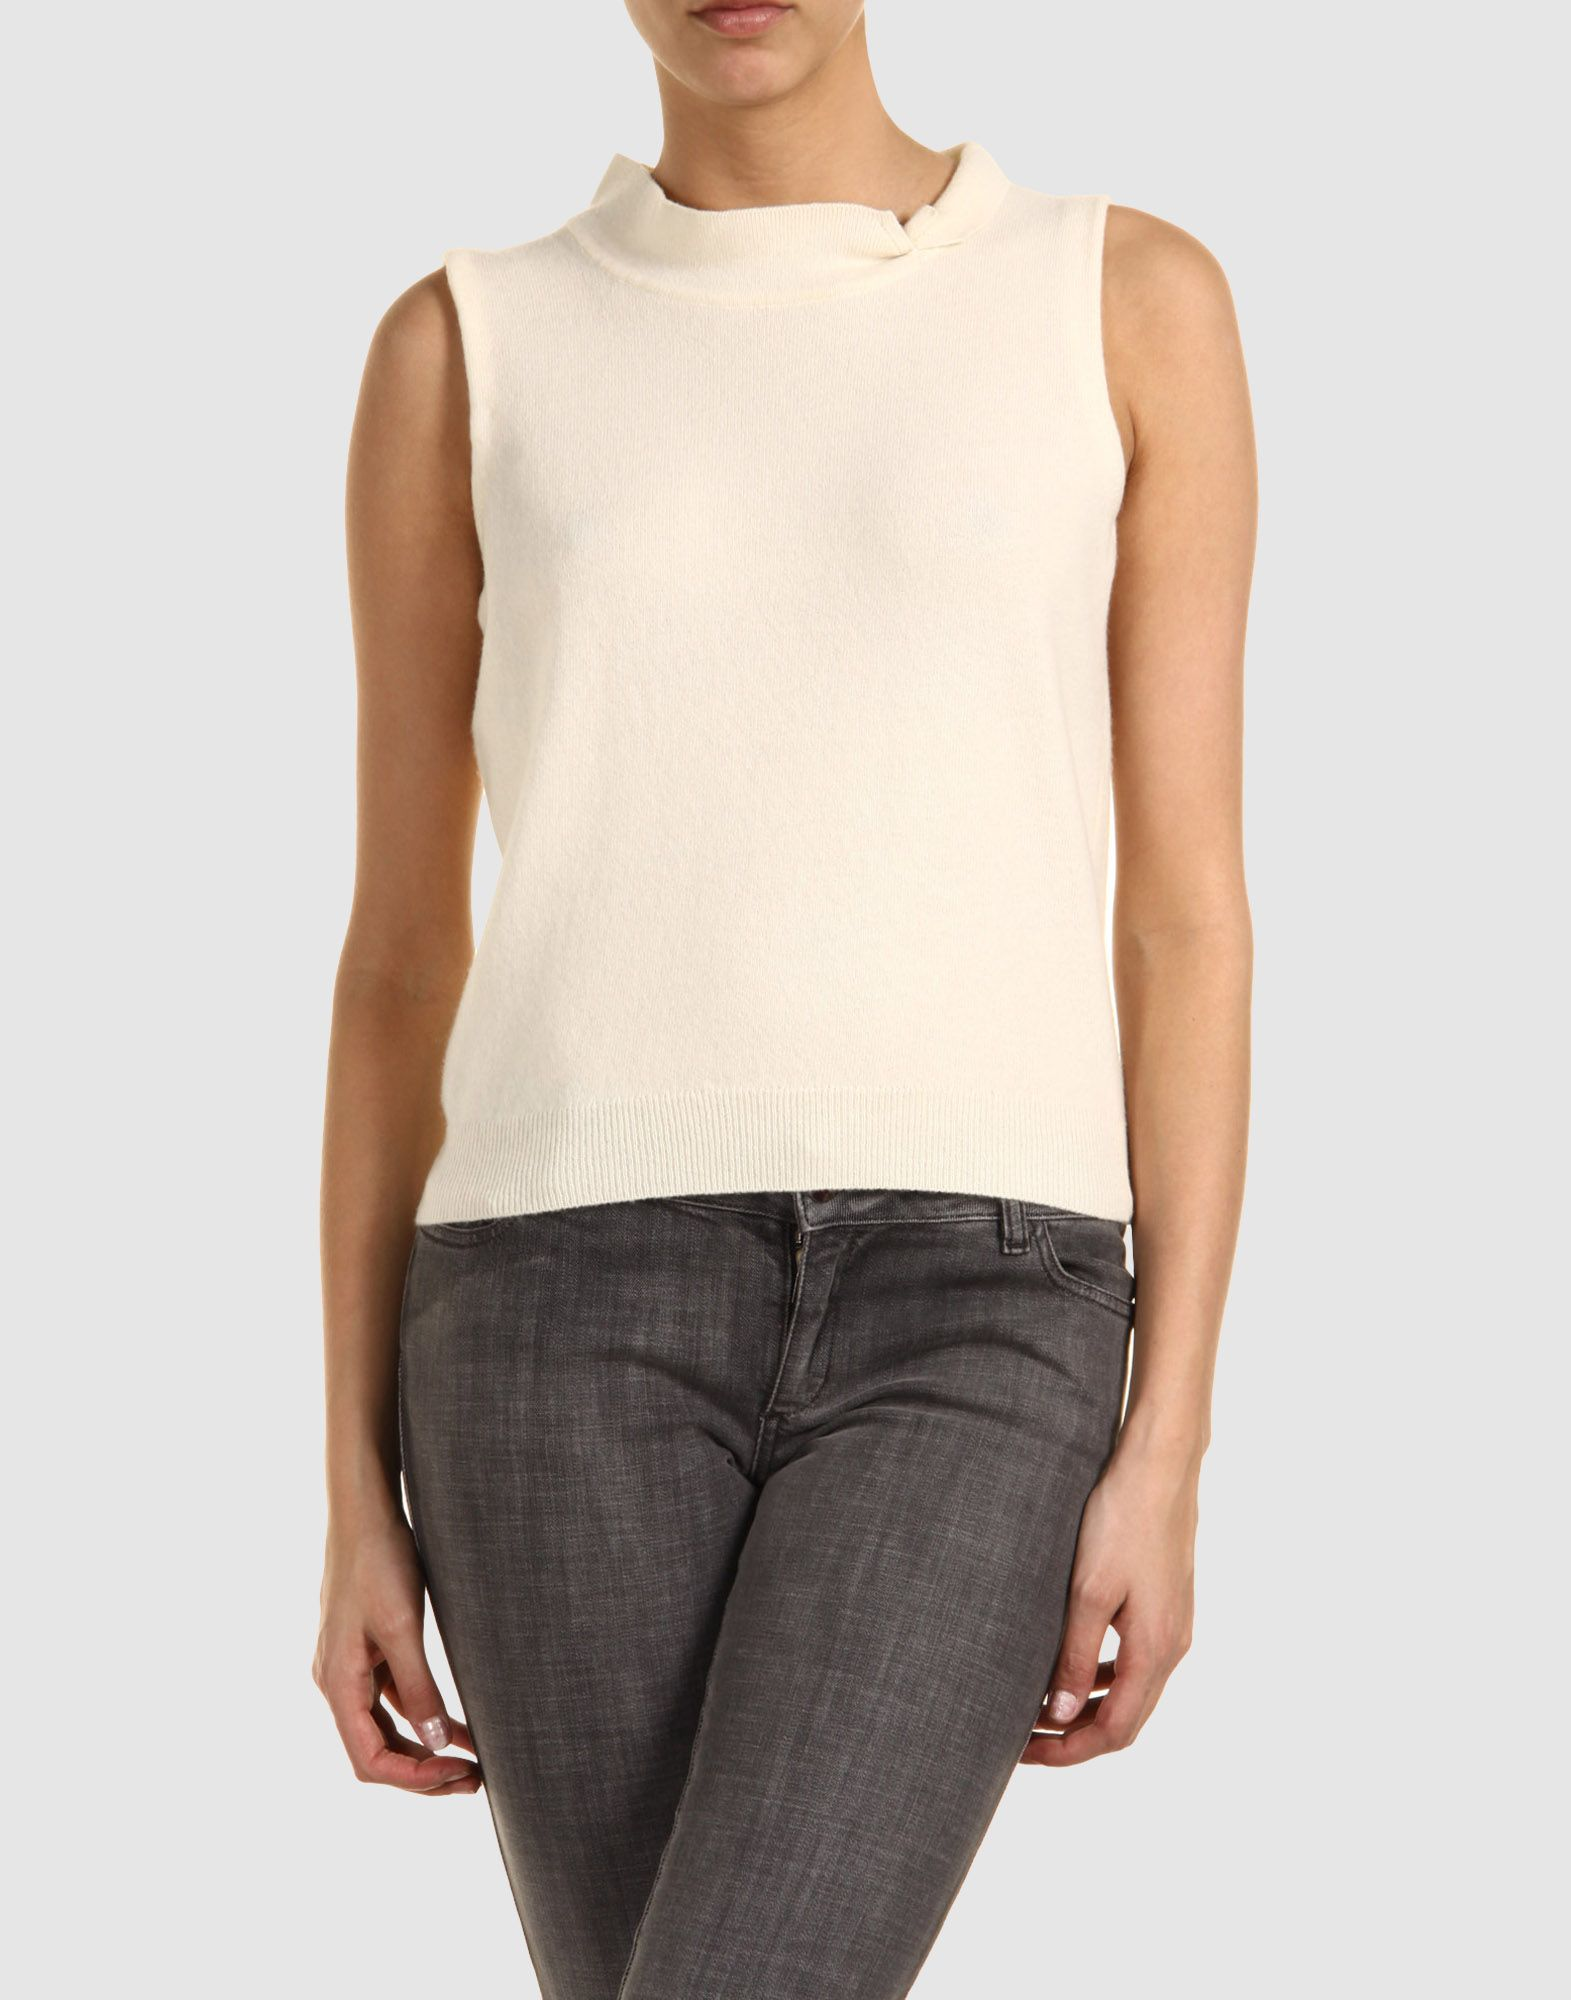 marc jacobs  marc jacobs sleeveless sweaters